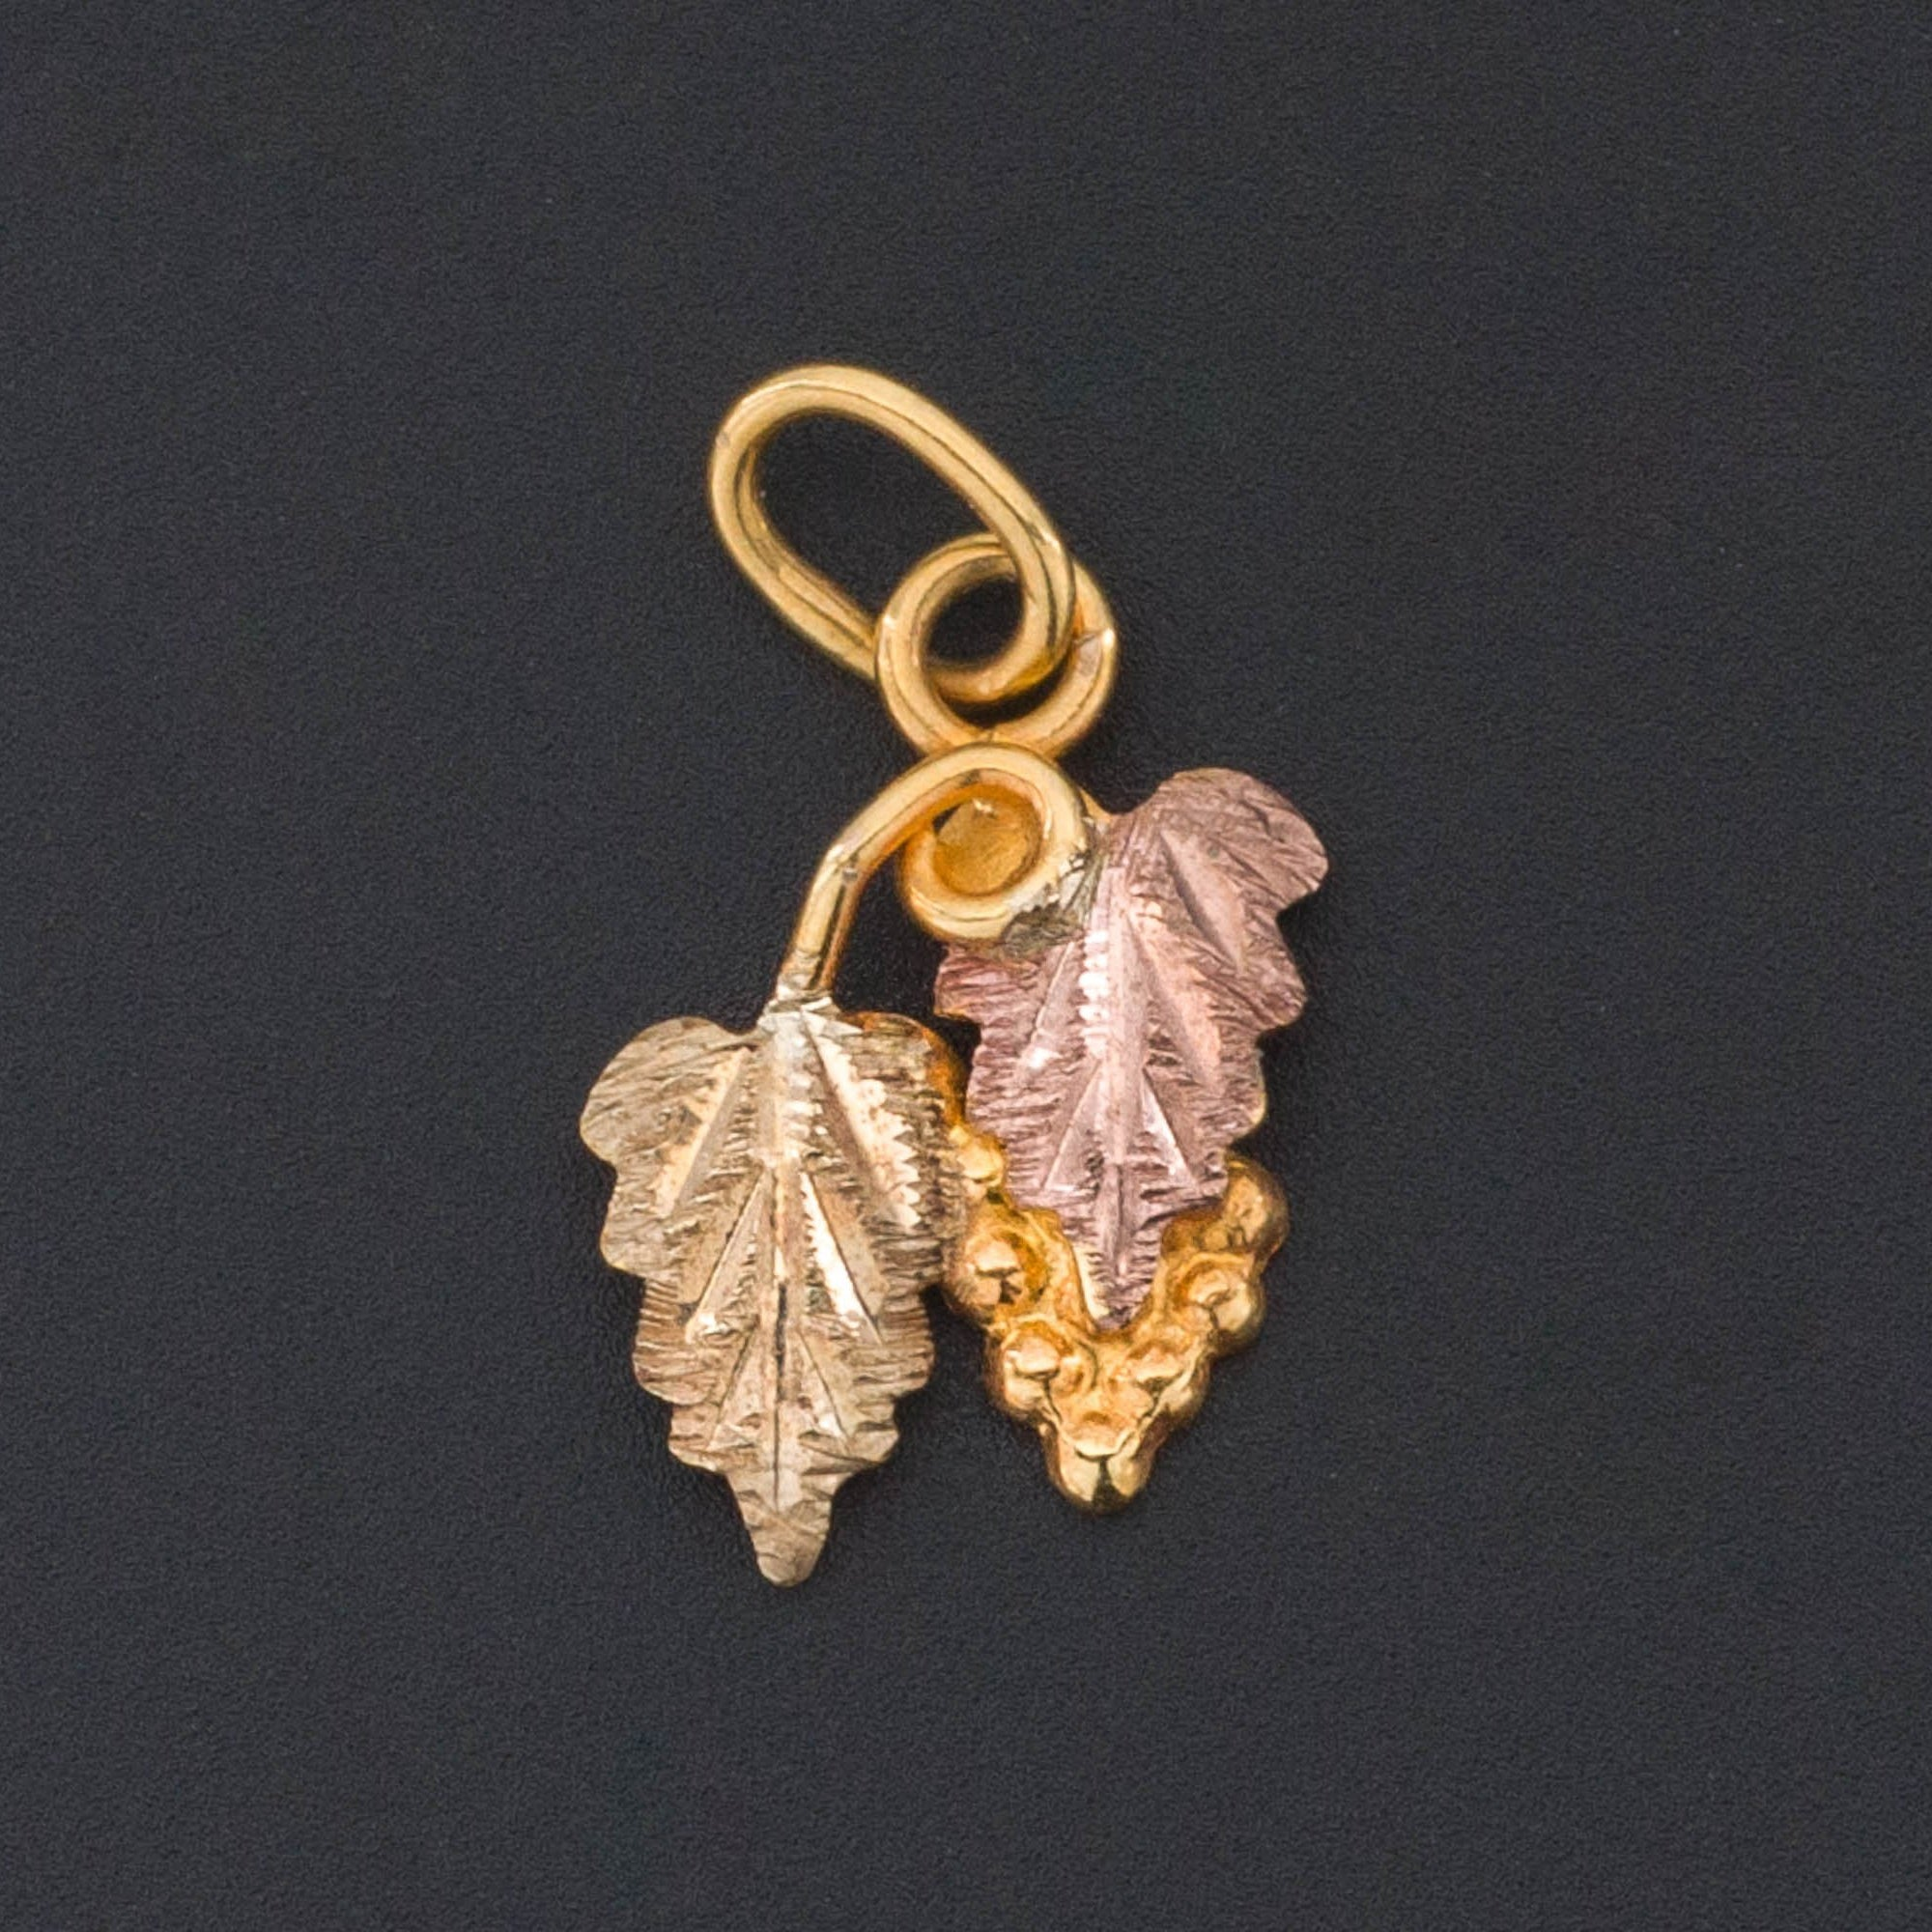 10k Gold Grapes Charm | Vintage Gold Charm-Trademark Antiques